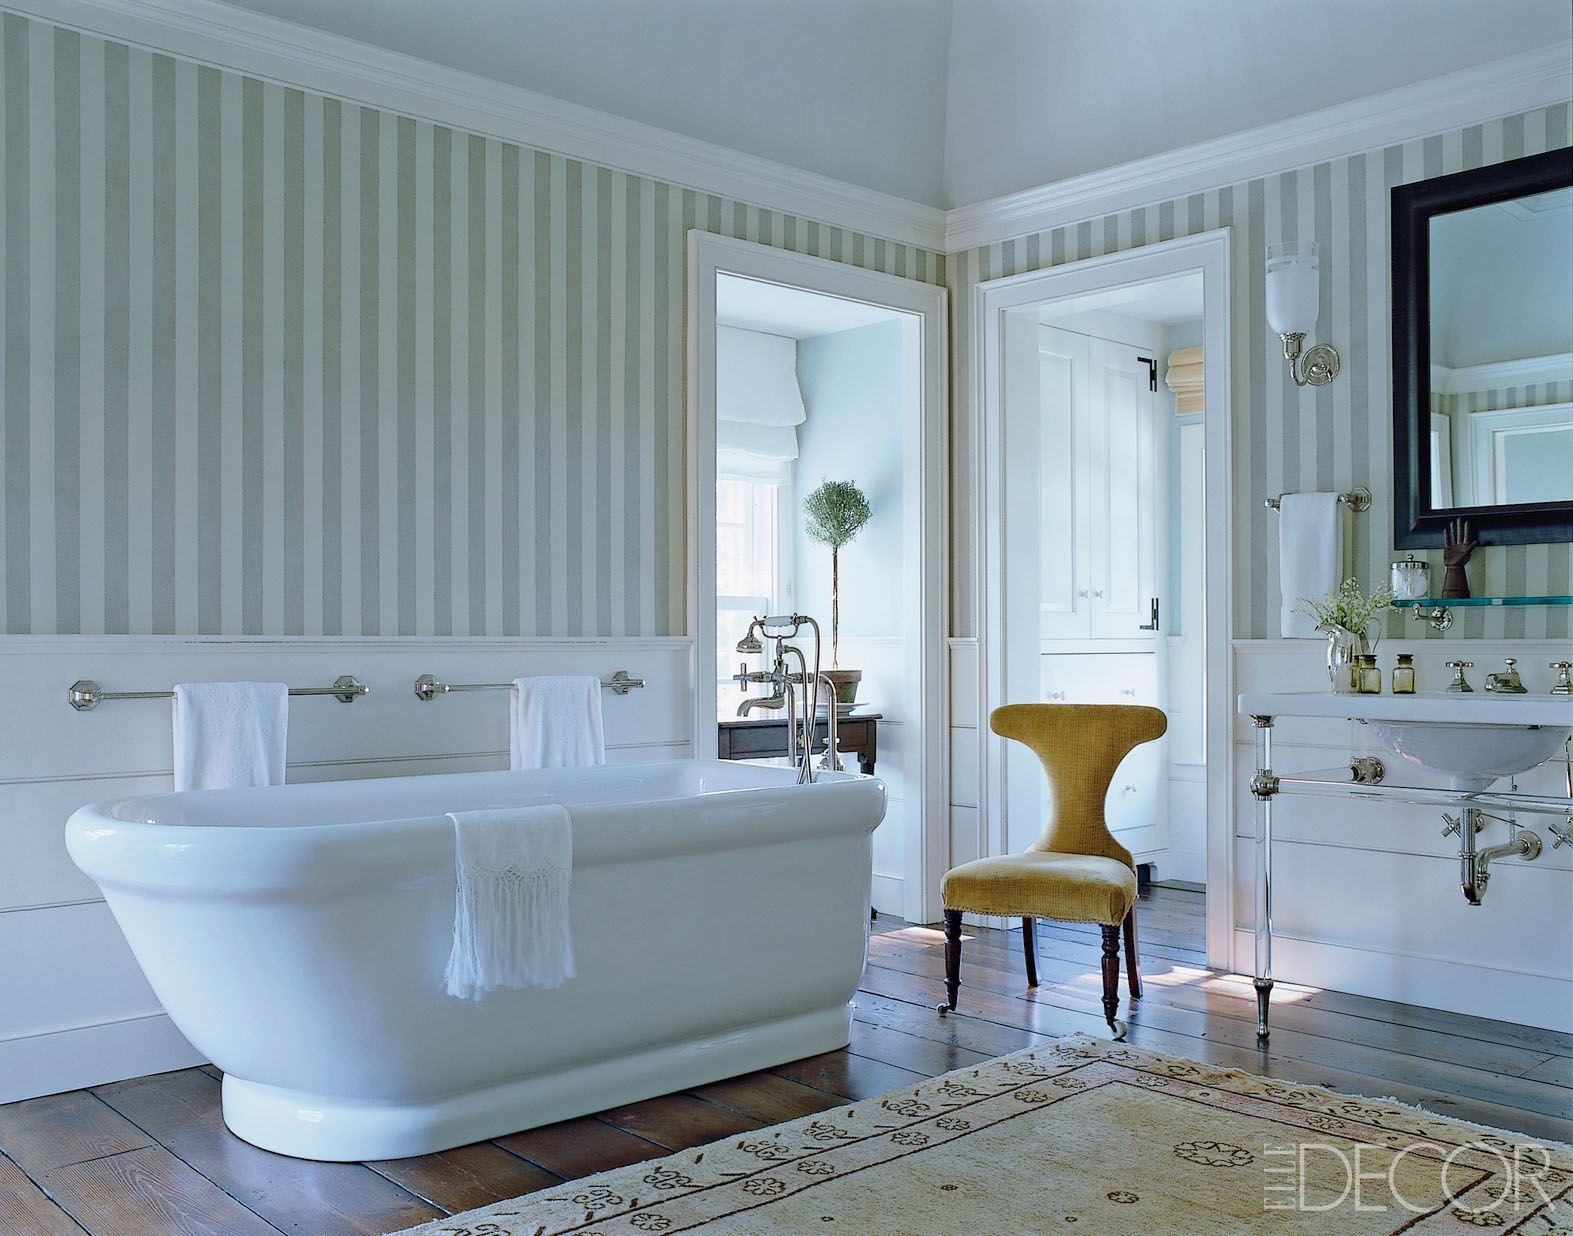 archives bathroom infinity june before know about focal remodeling think blog designer to bathrooms point id tag ahead drain things your